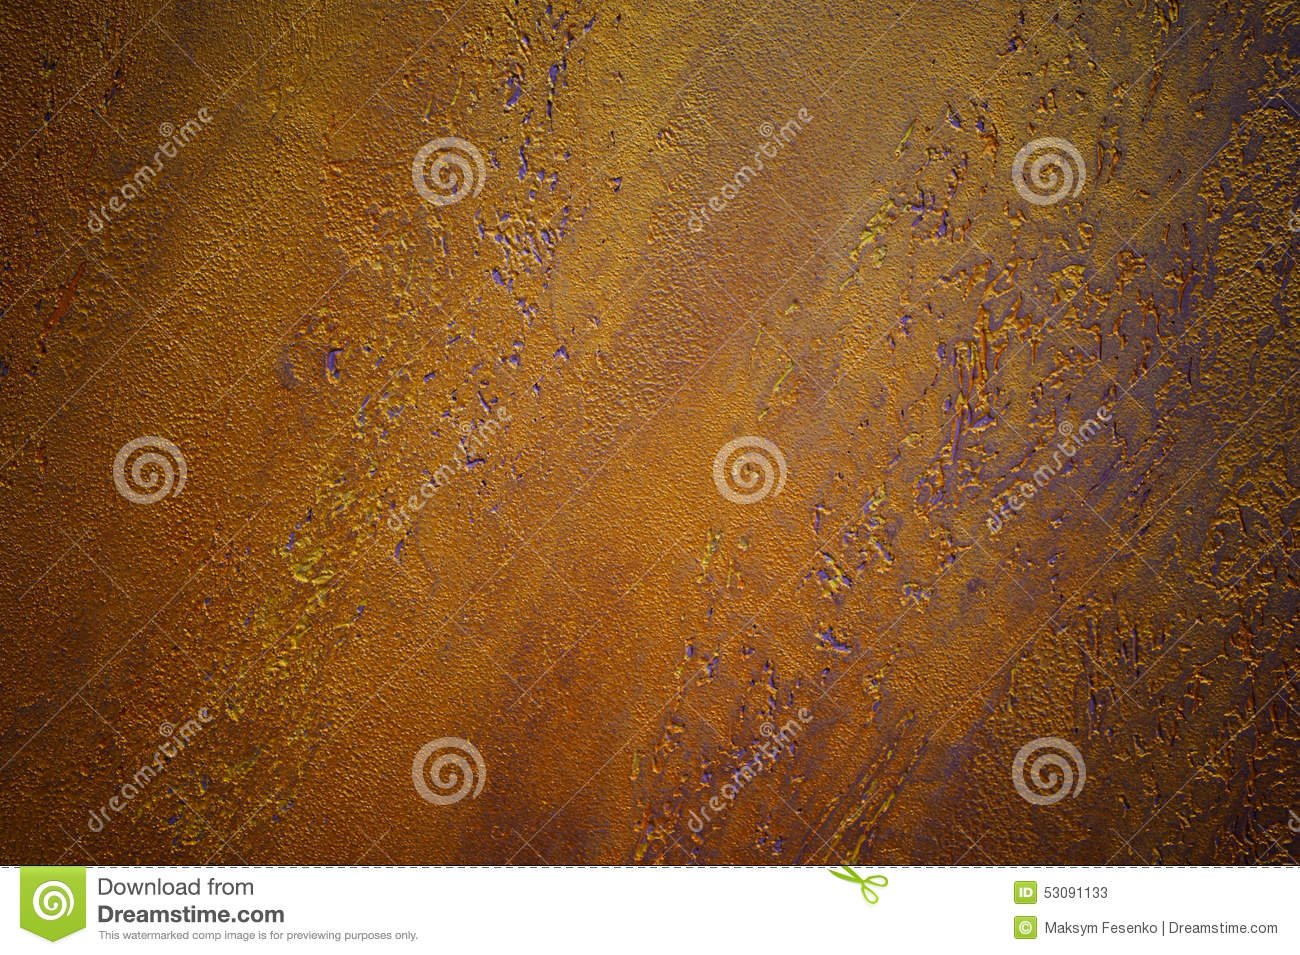 Jpg Texture Background Free Stock Photos Download 105 545: Rust Metal Texture Background Gold And Purple Stock Image